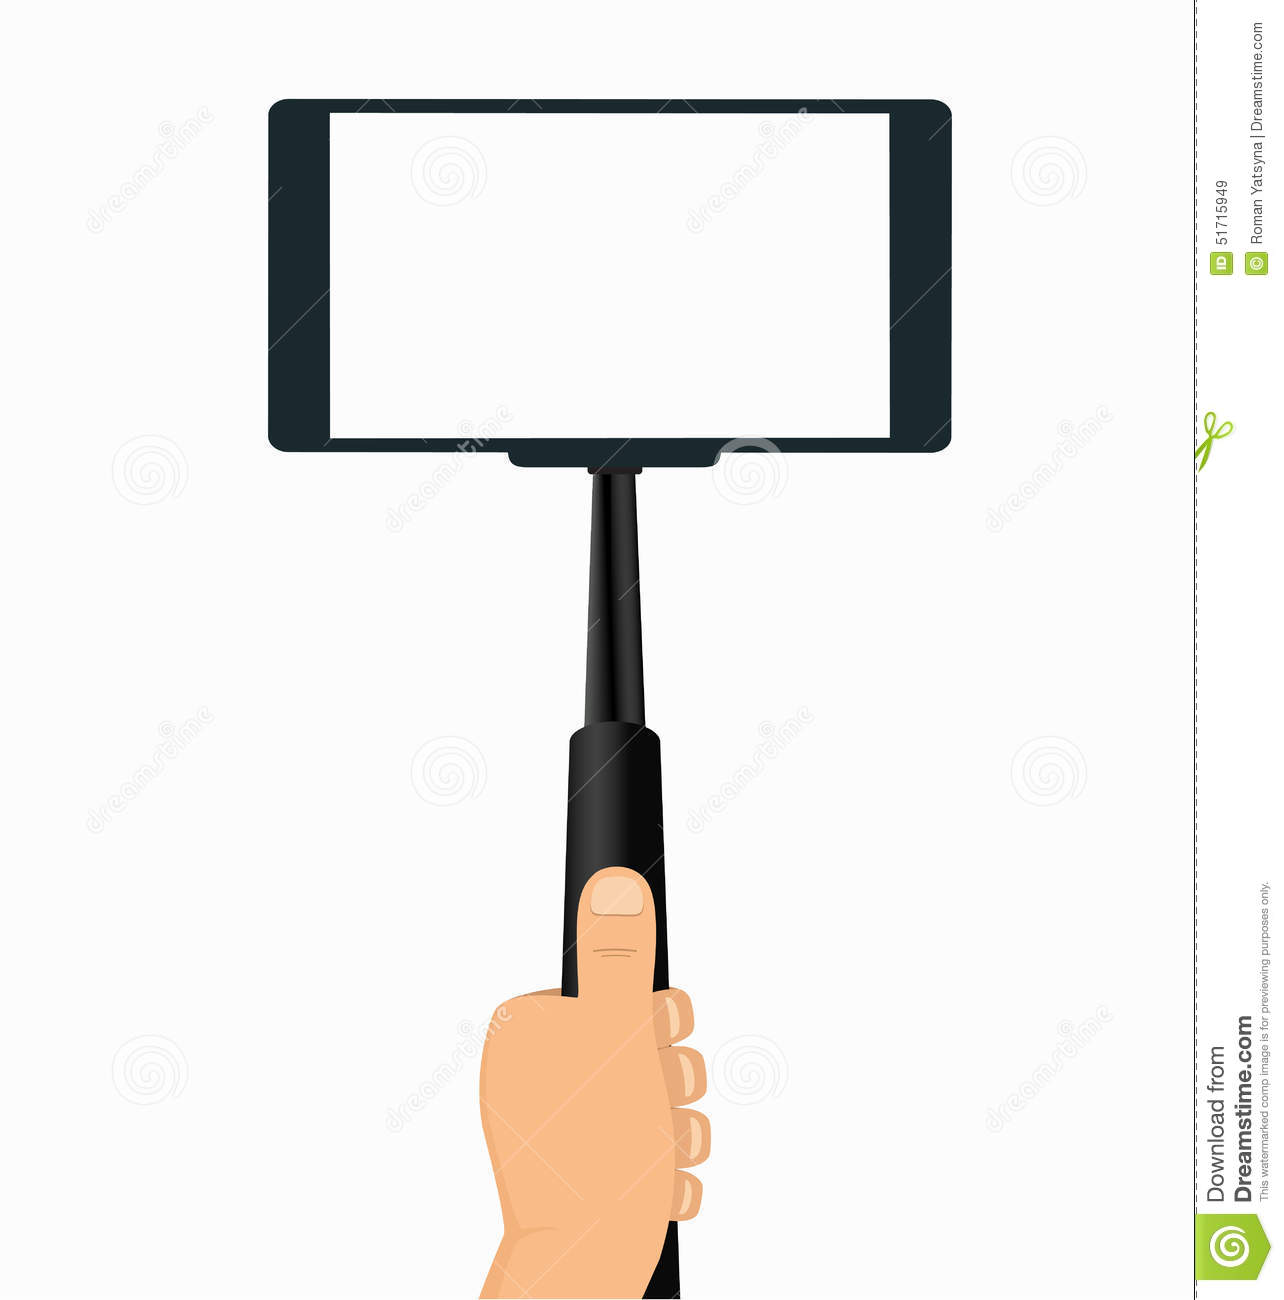 monopod in hand taking selfie on a mobile phone stock vector image 51715949. Black Bedroom Furniture Sets. Home Design Ideas